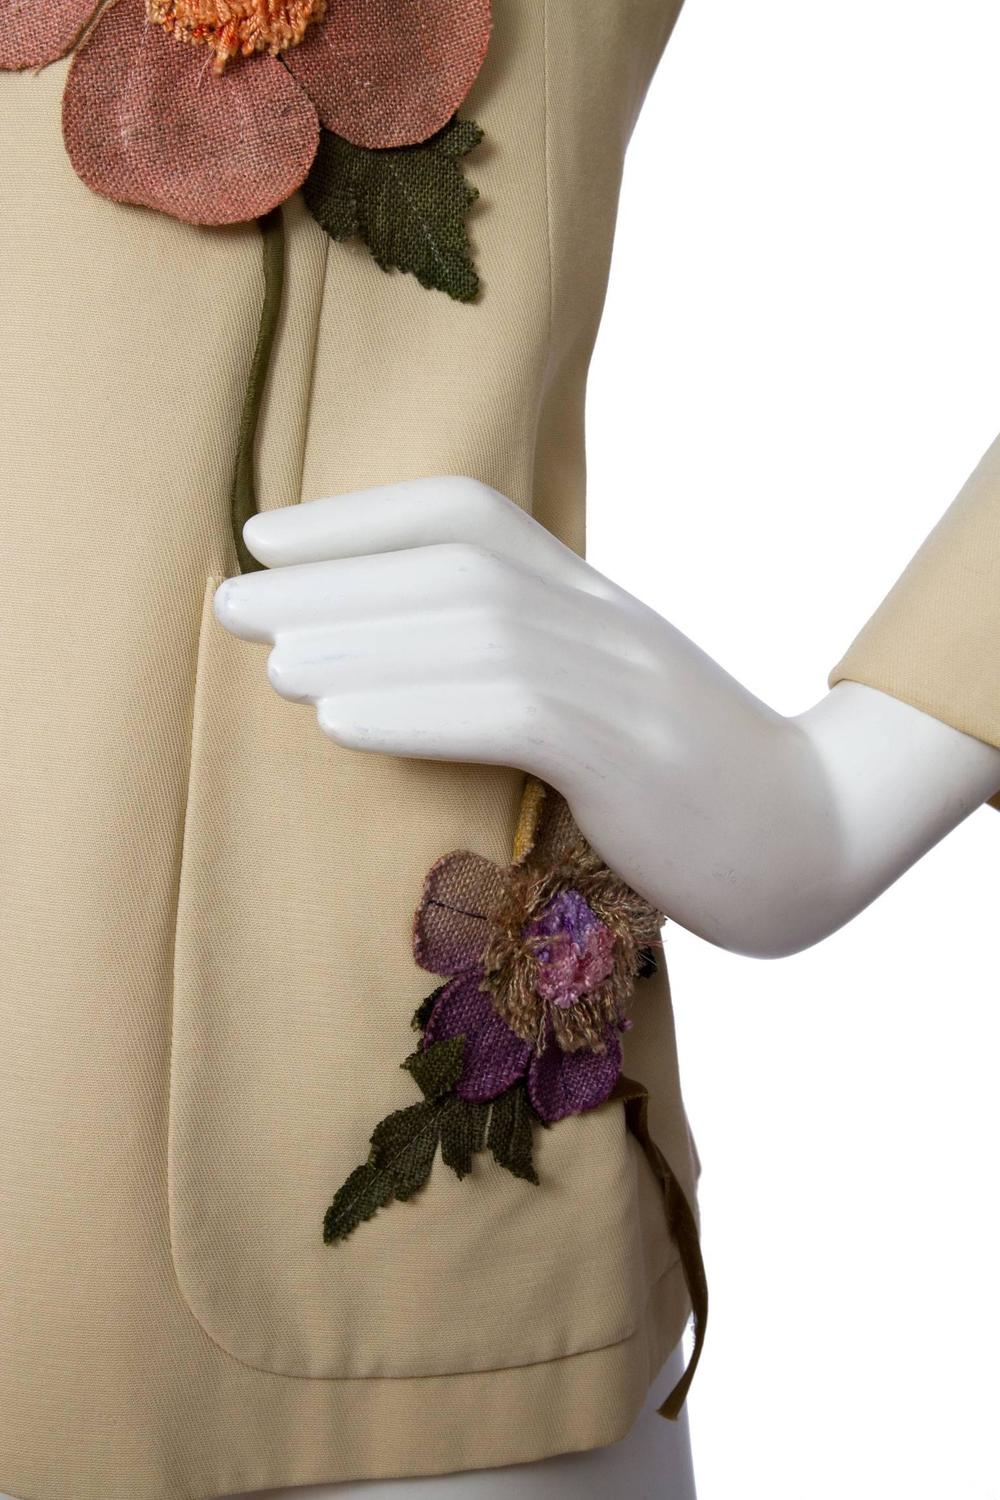 90s Moschino Blazer W. Flower Appliqué For Sale at 1stdibs